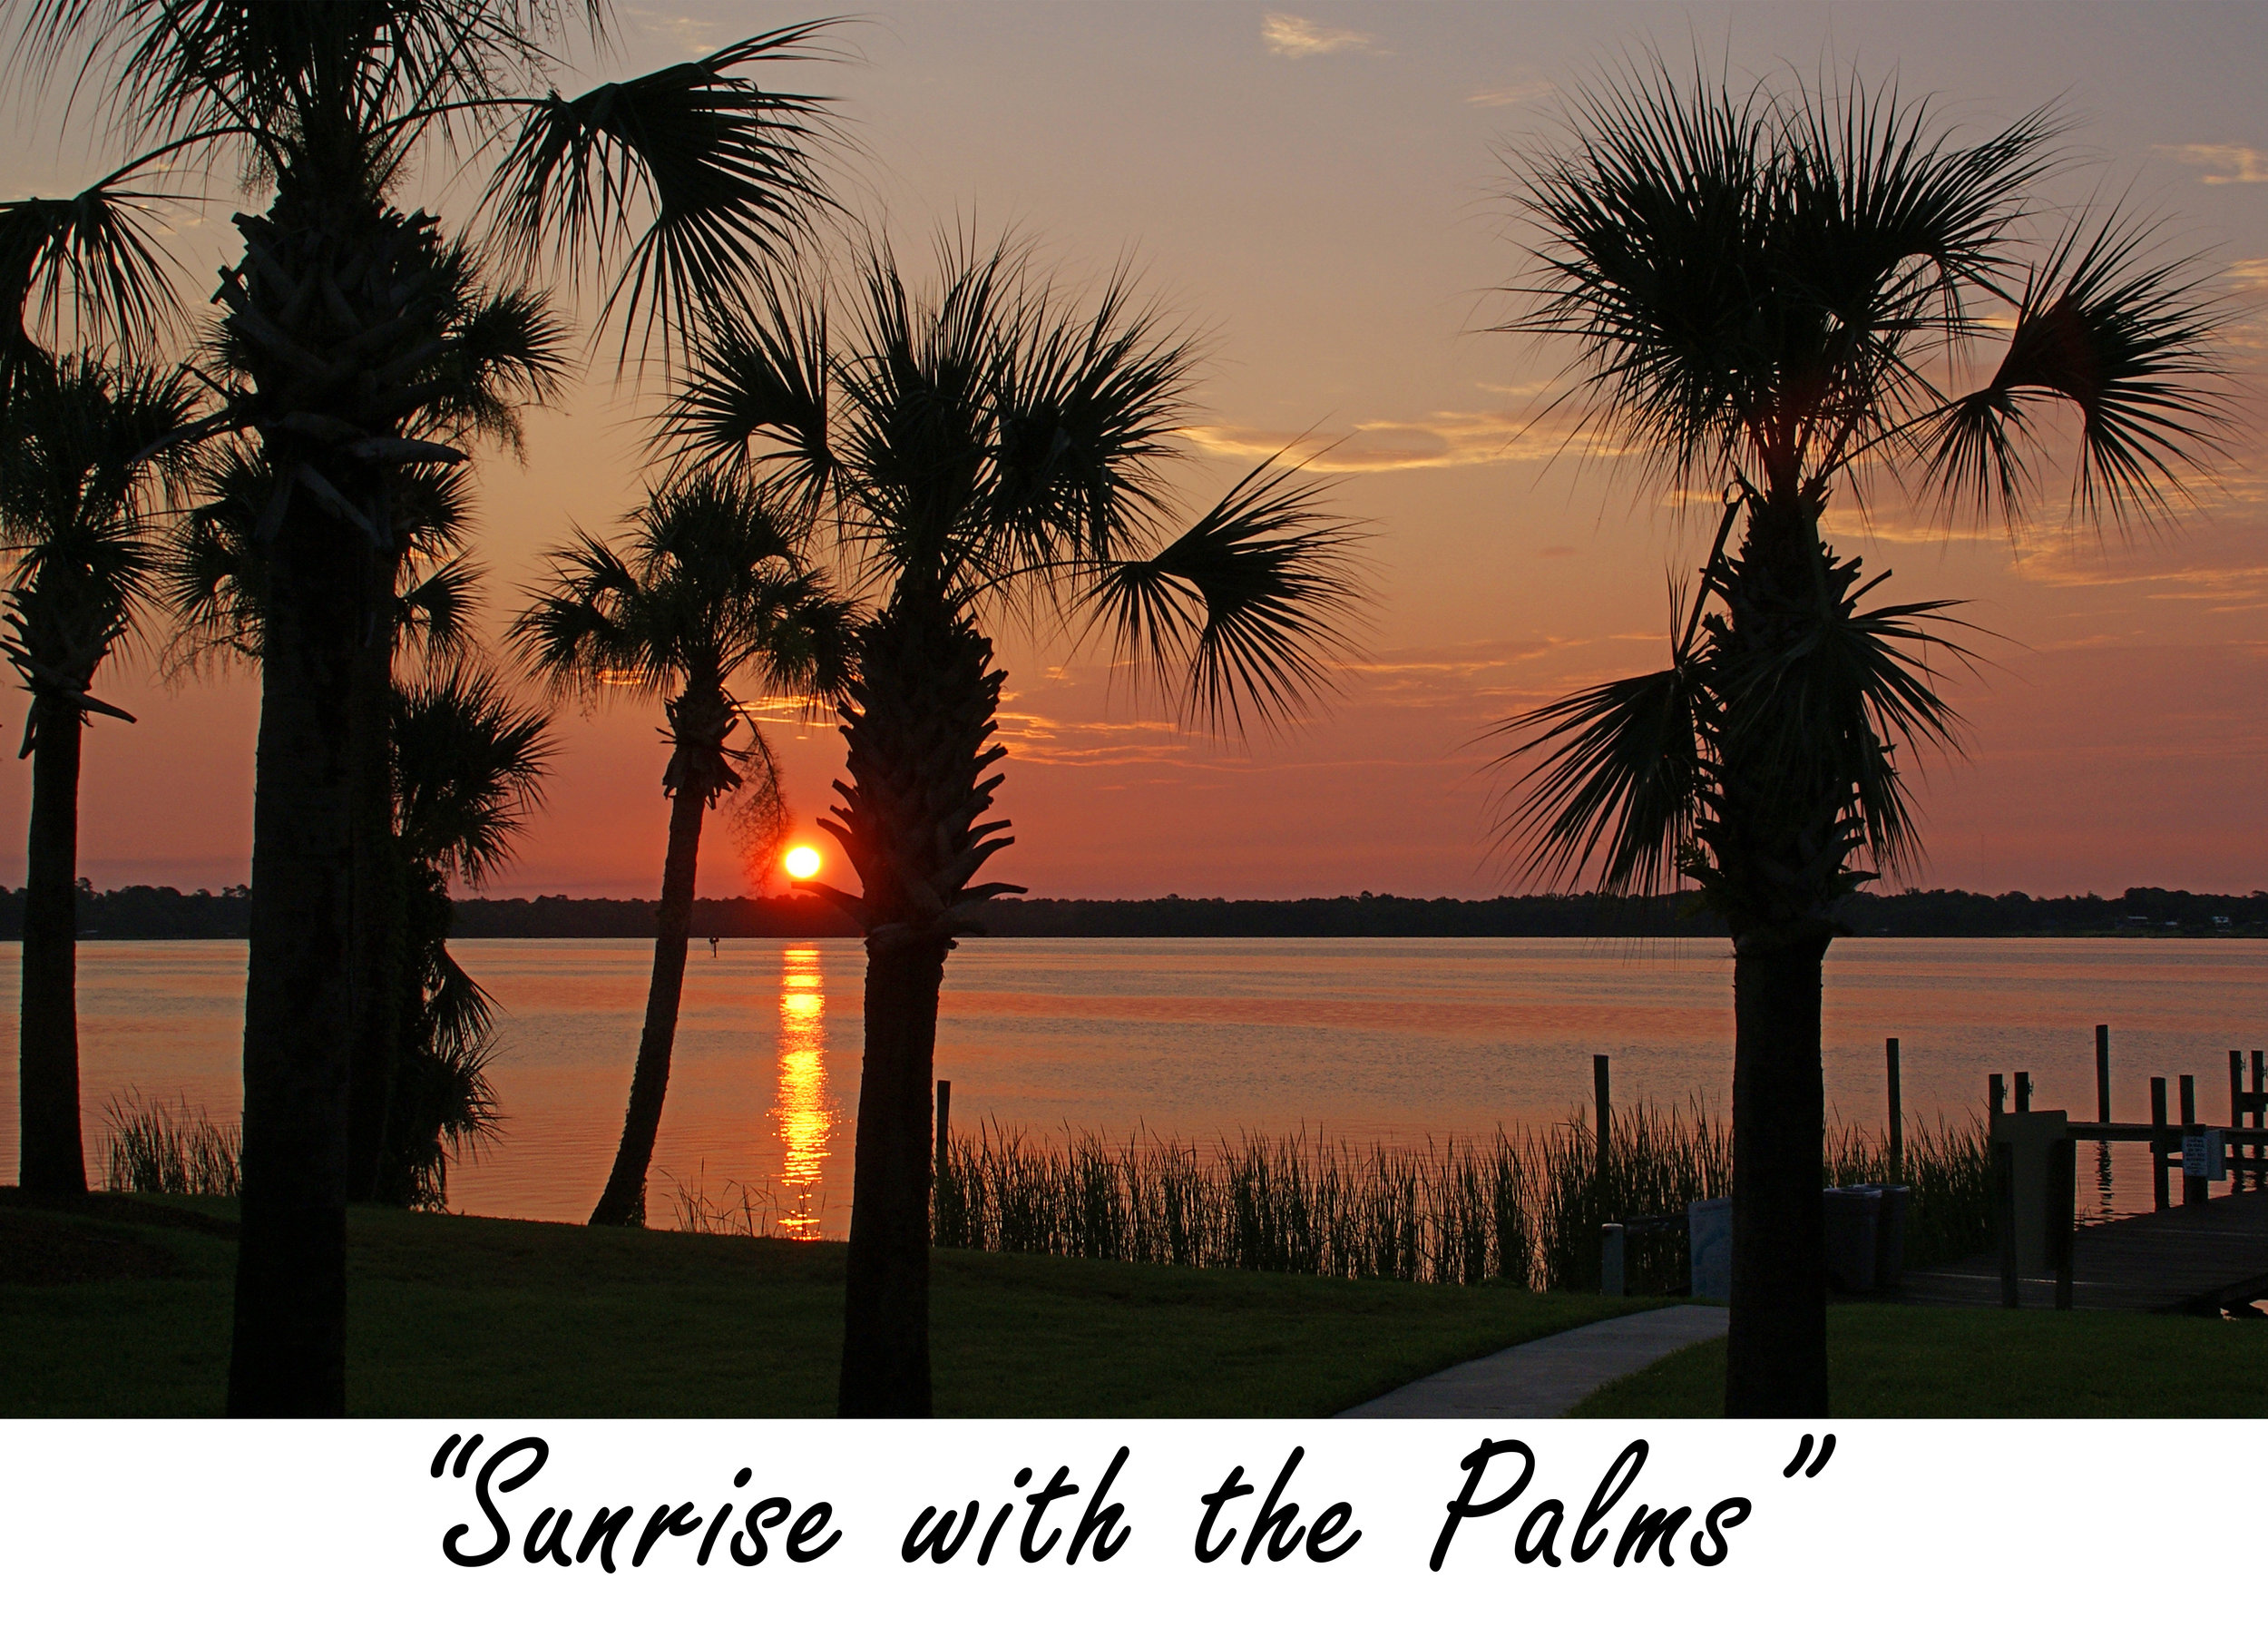 Sunrise with the Palms.jpg